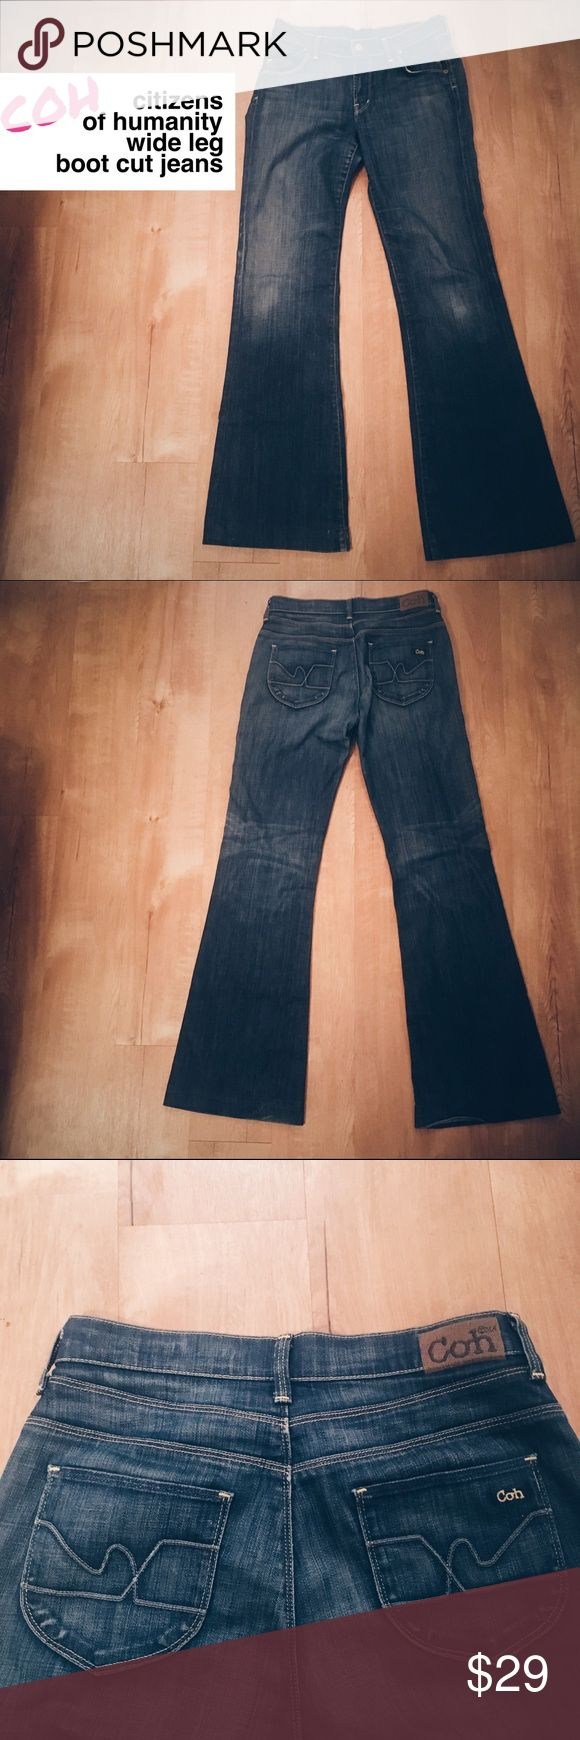 ⚡️Flash Sale⚡️Citizens of Humanity Bootcut Jeans Super cute COH Citizens of Humanity wide leg bootcut jeans. They are used and do show signs of wear at the bottom of the legs and slight fading at knees (see picture). Otherwise in good condition. Feel free to ask questions or make an offer! Citizens of Humanity Jeans Boot Cut